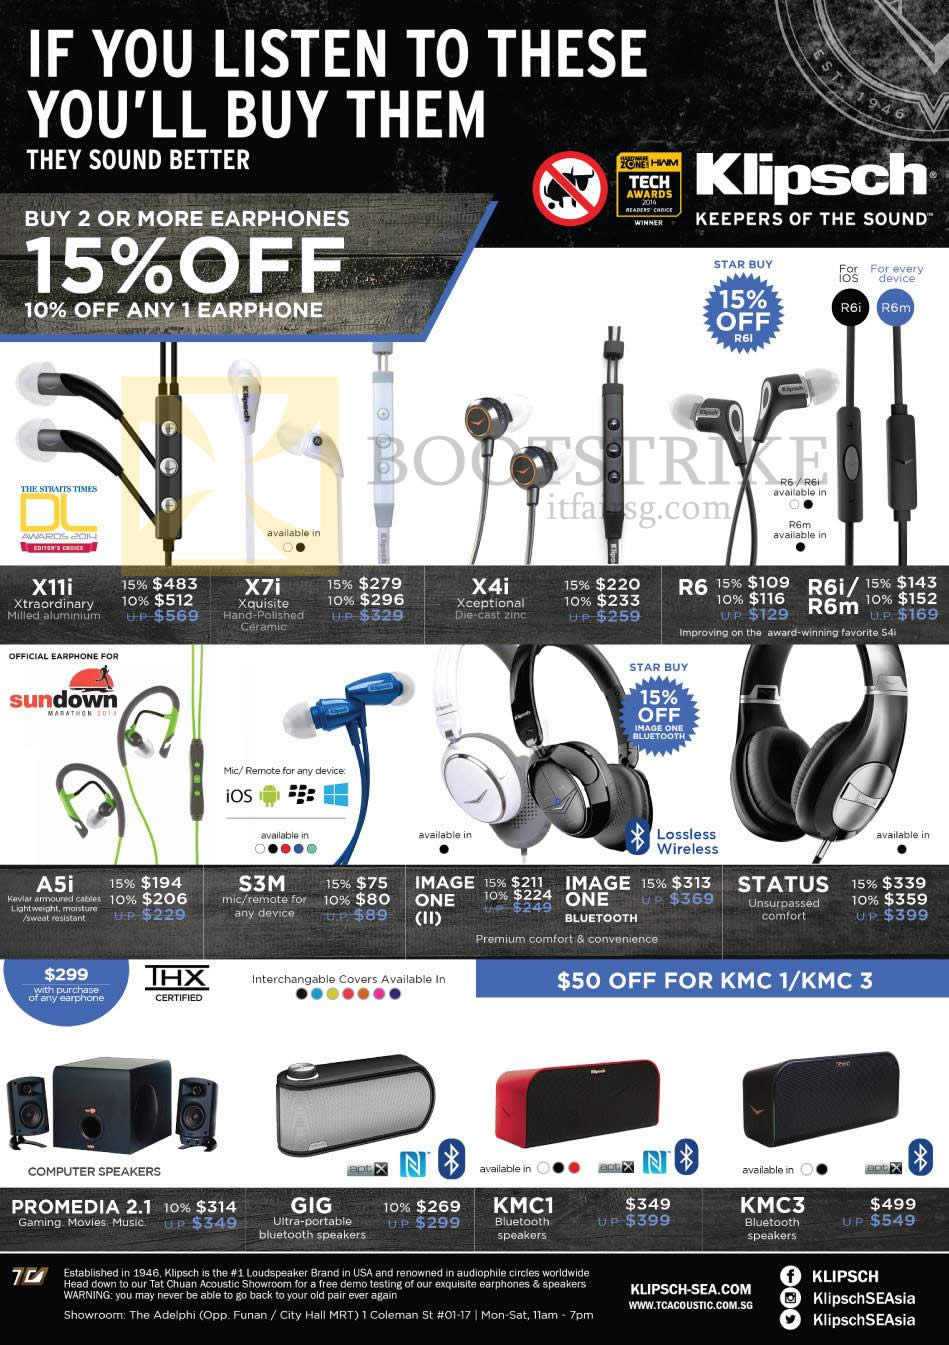 SITEX 2014 price list image brochure of Klipsch Speakers, Earphones, X11i, X7i, X4i, R6, R6i, R6m, A5i, S3M, IMAGE ONE, STATUS, PROMEDIA 2.1, GIG, KMC1, KMC3